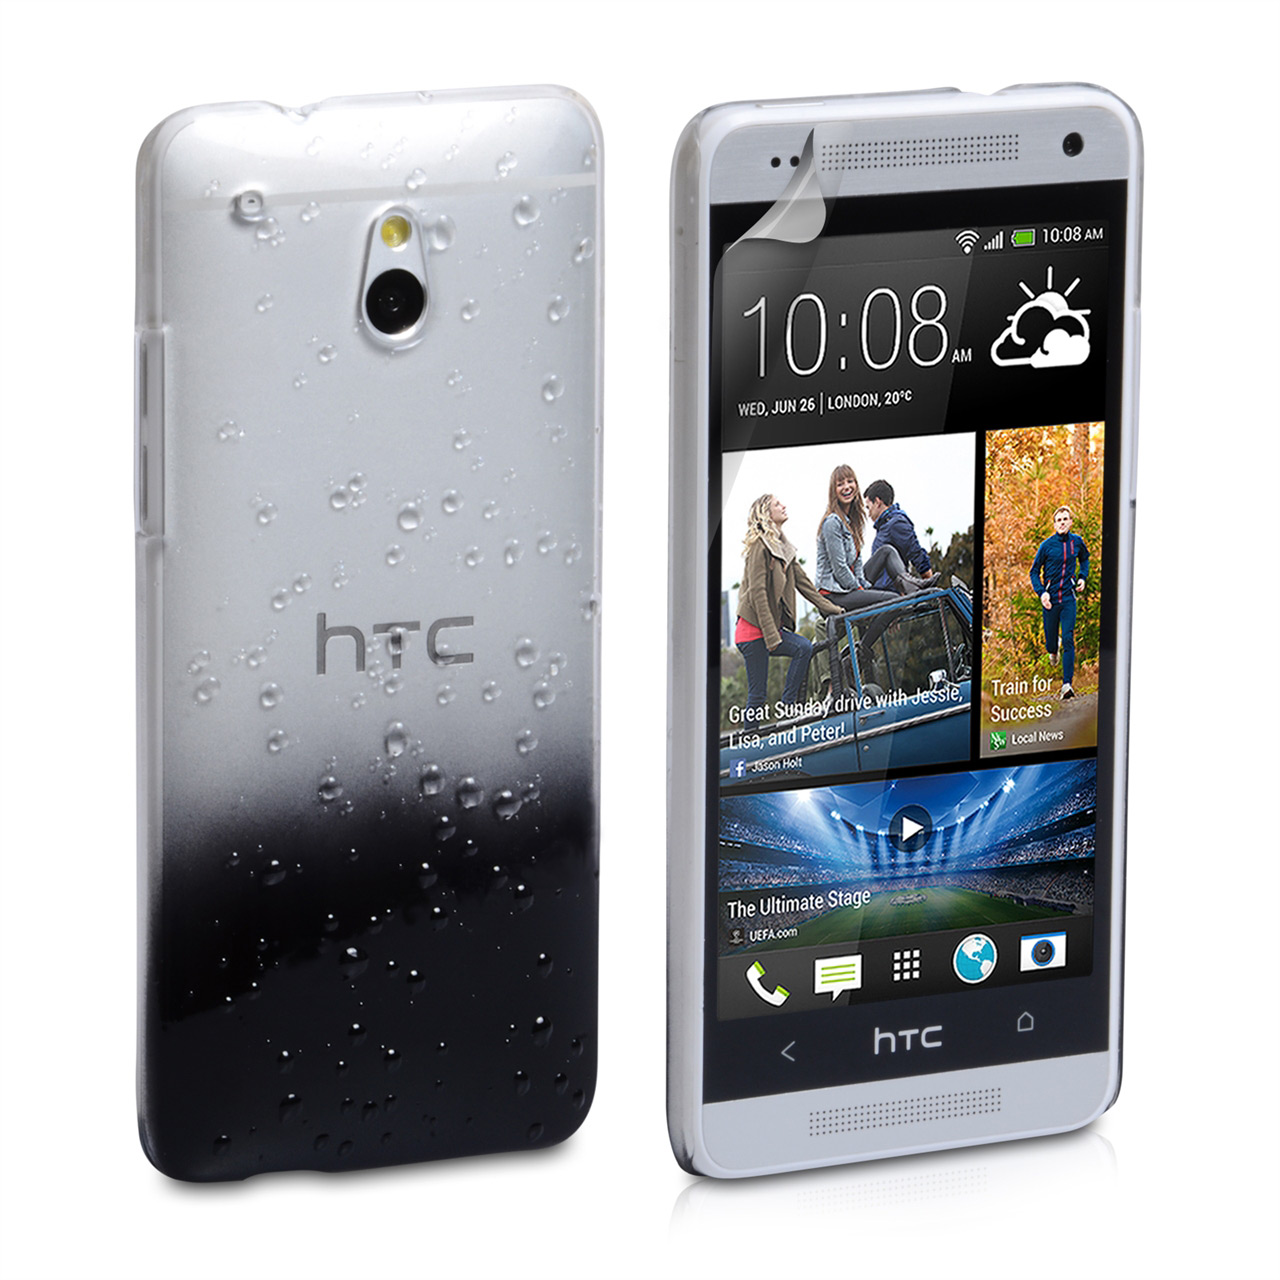 YouSave Accessories HTC One Mini Black Raindrop Hard Case